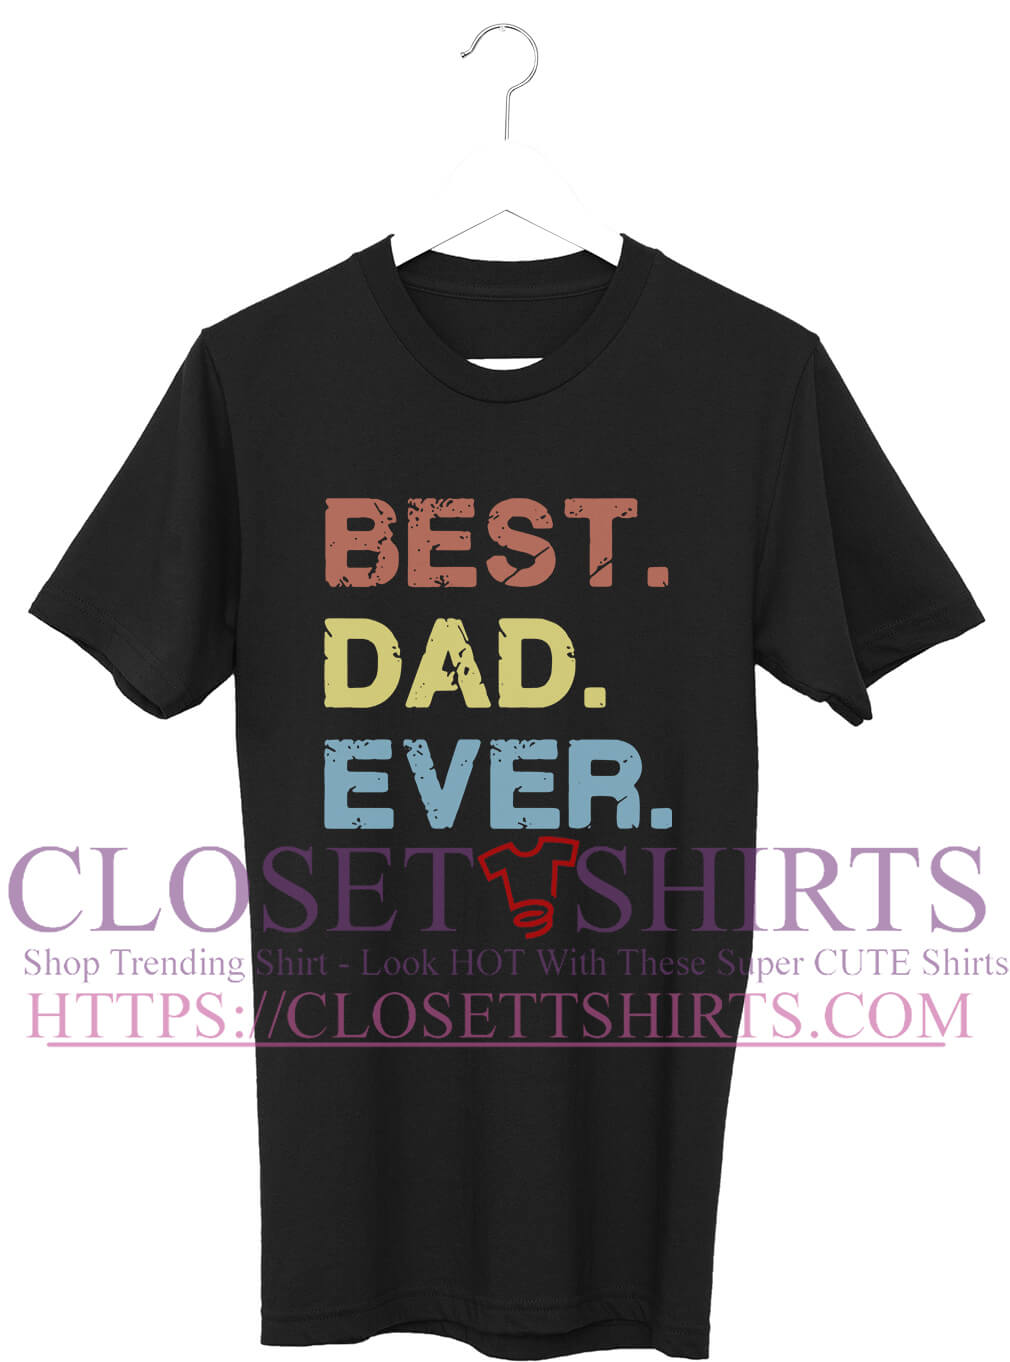 f43c50a80 Best dad ever shirt, tank top, classic guys, ladies tee.